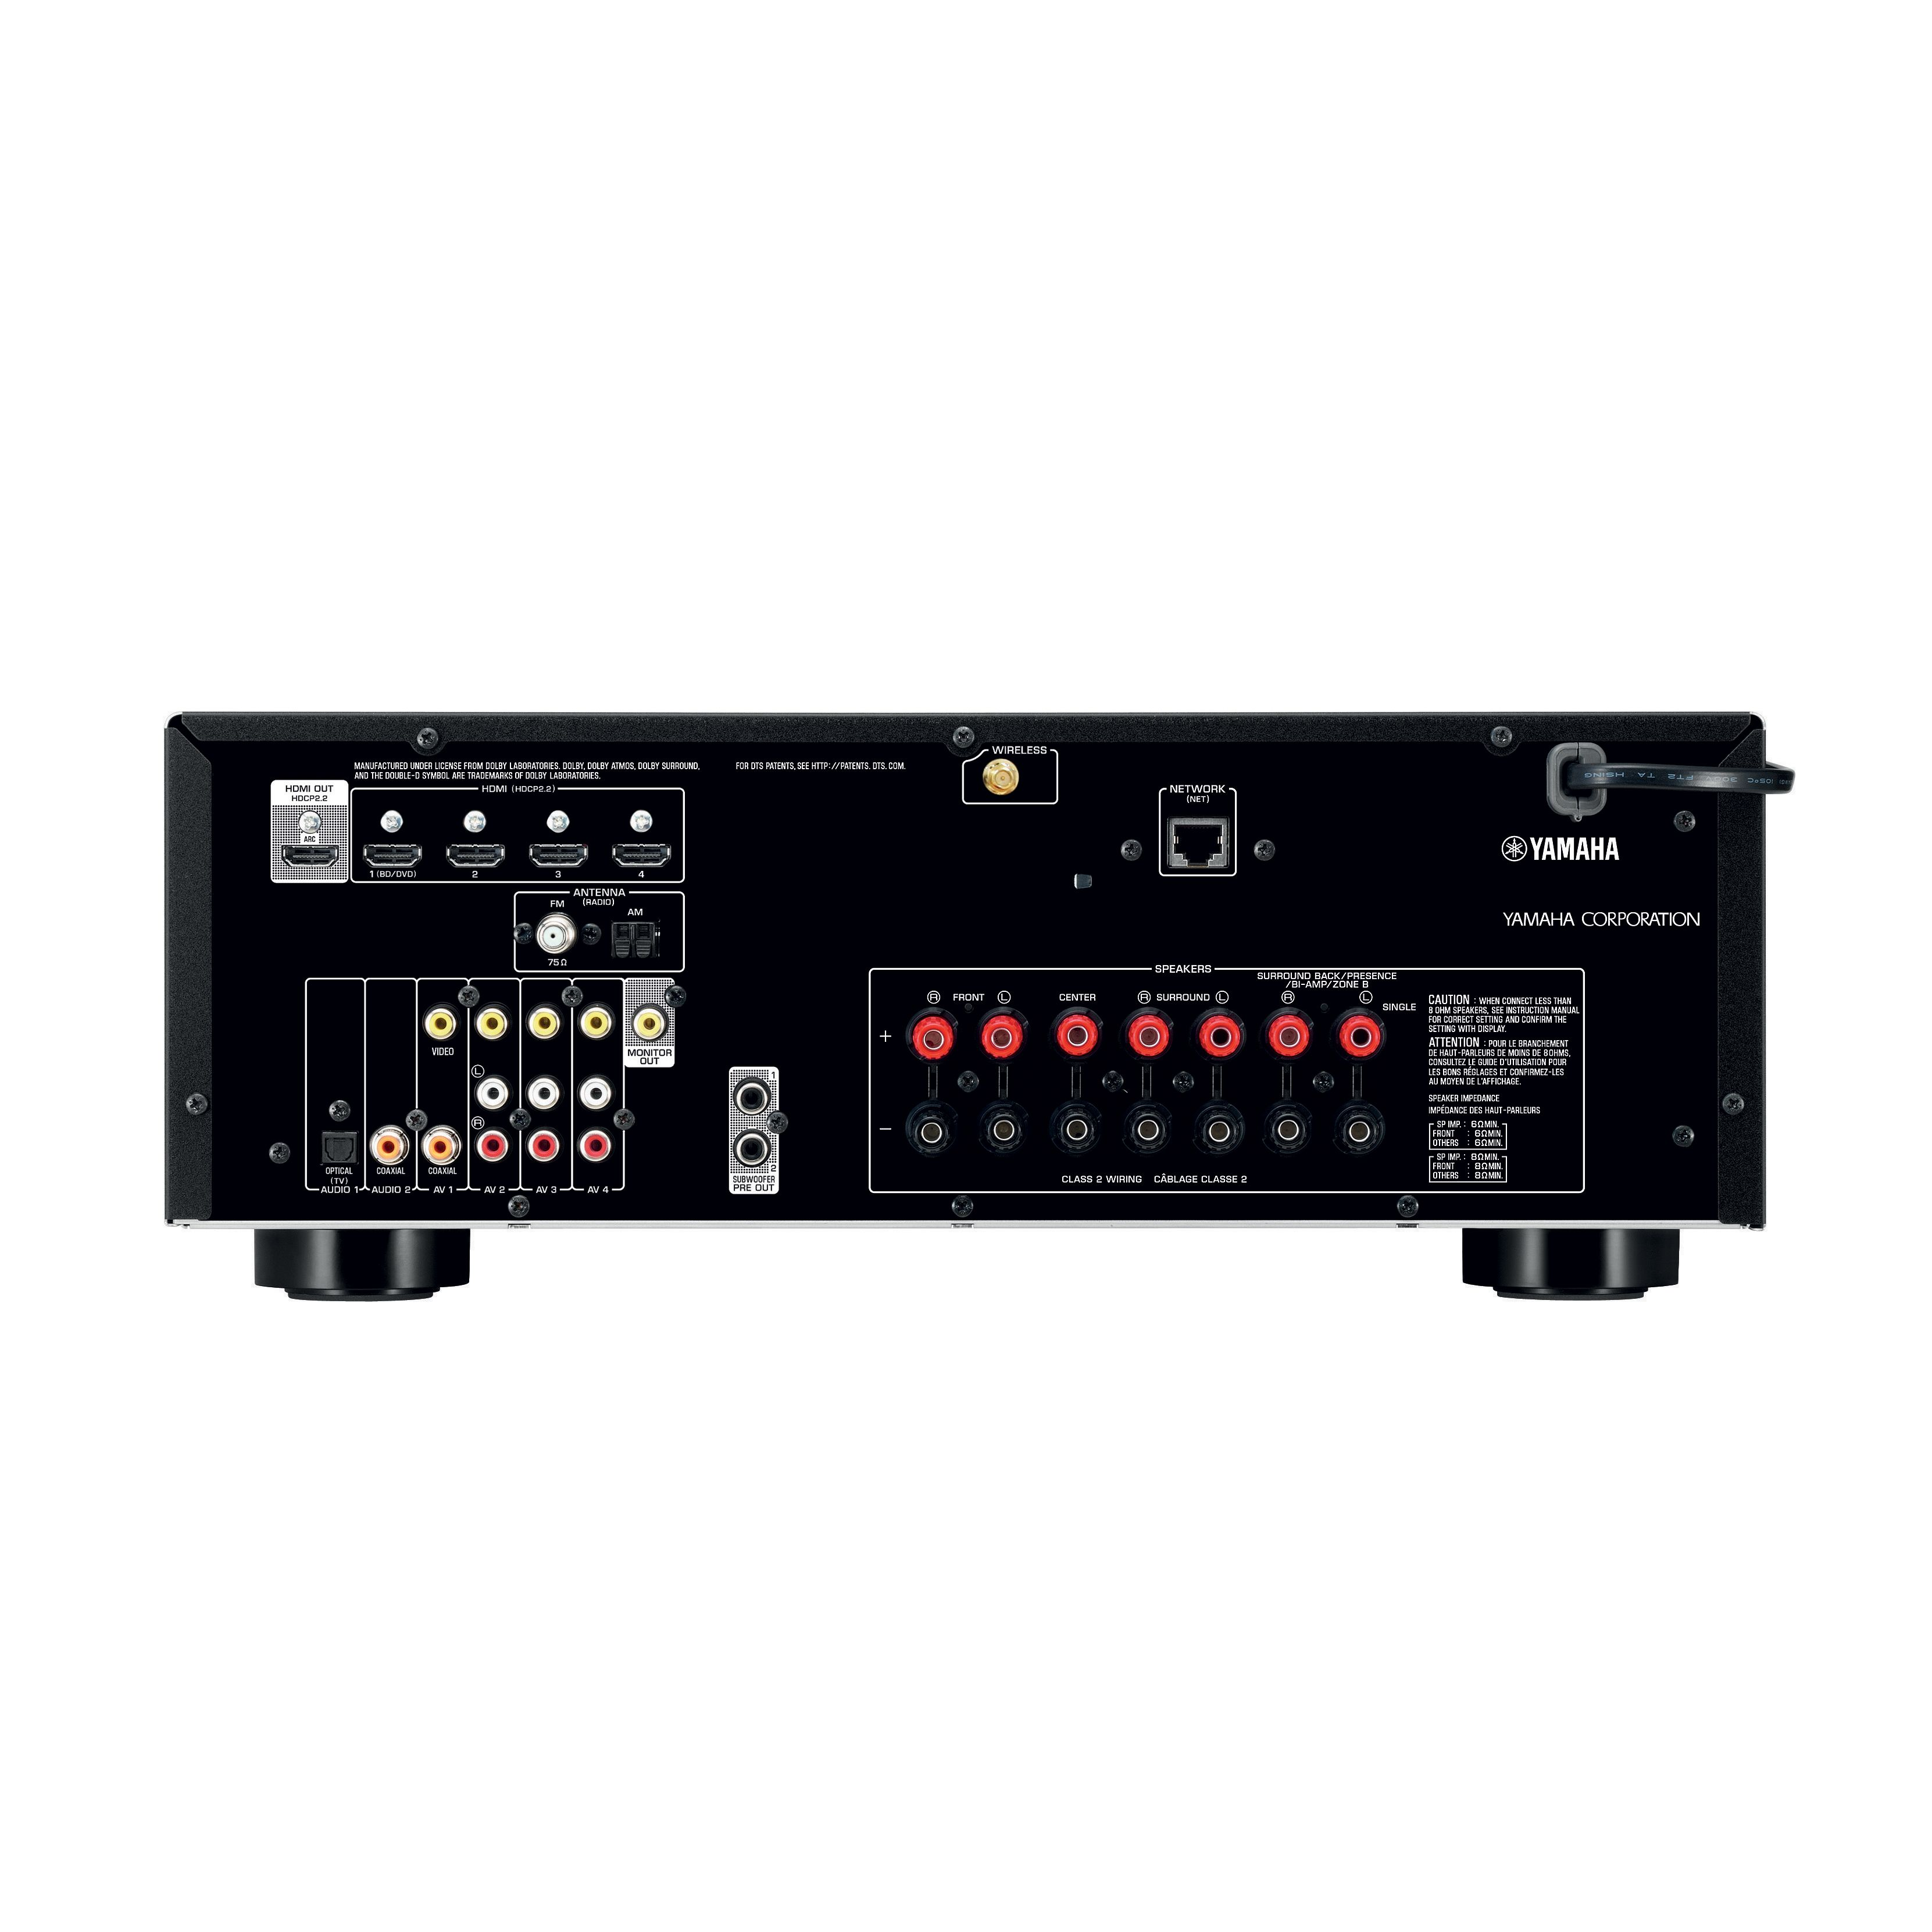 TSR-5810 - Downloads - AV Receivers - Audio & Visual - Products